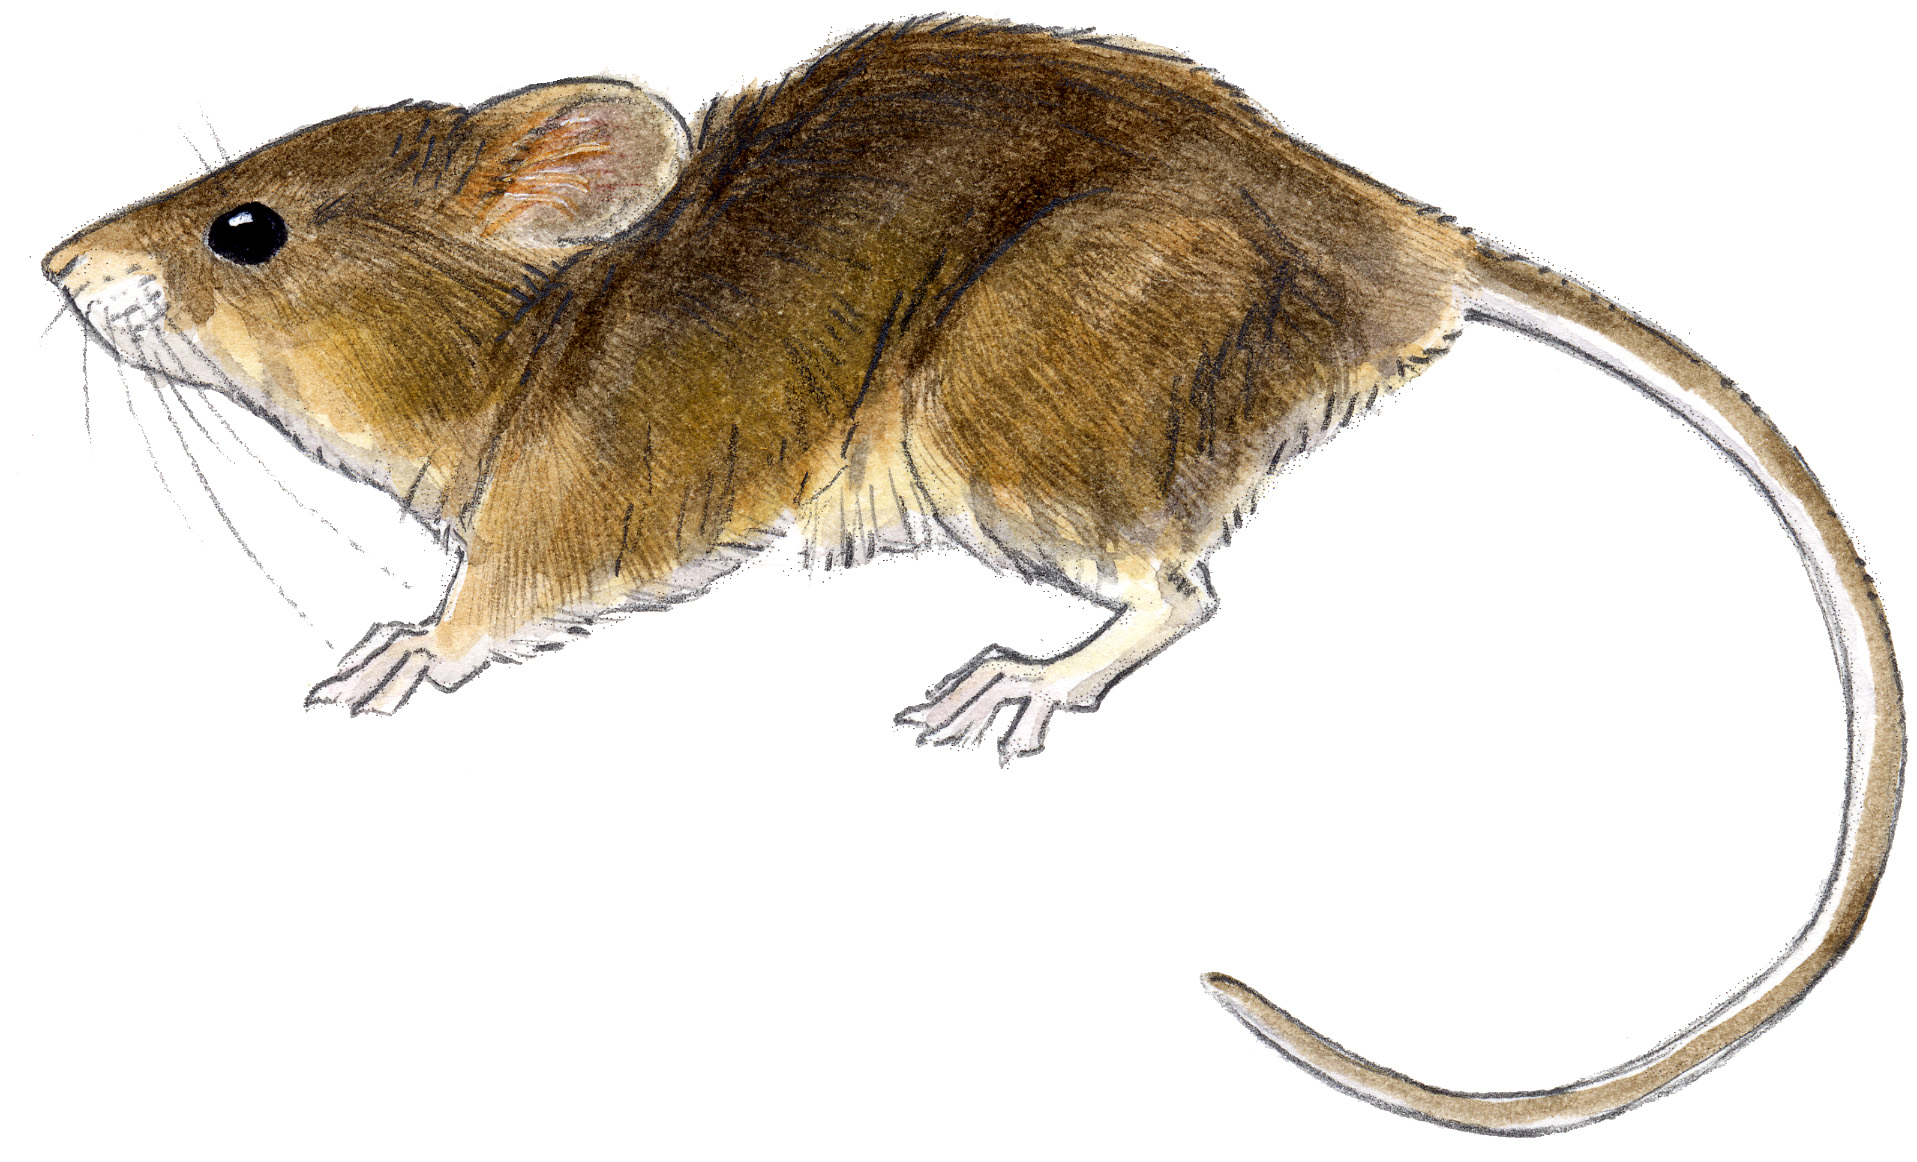 Drawn rodent field mouse Mouse John Laws Harvest Muir